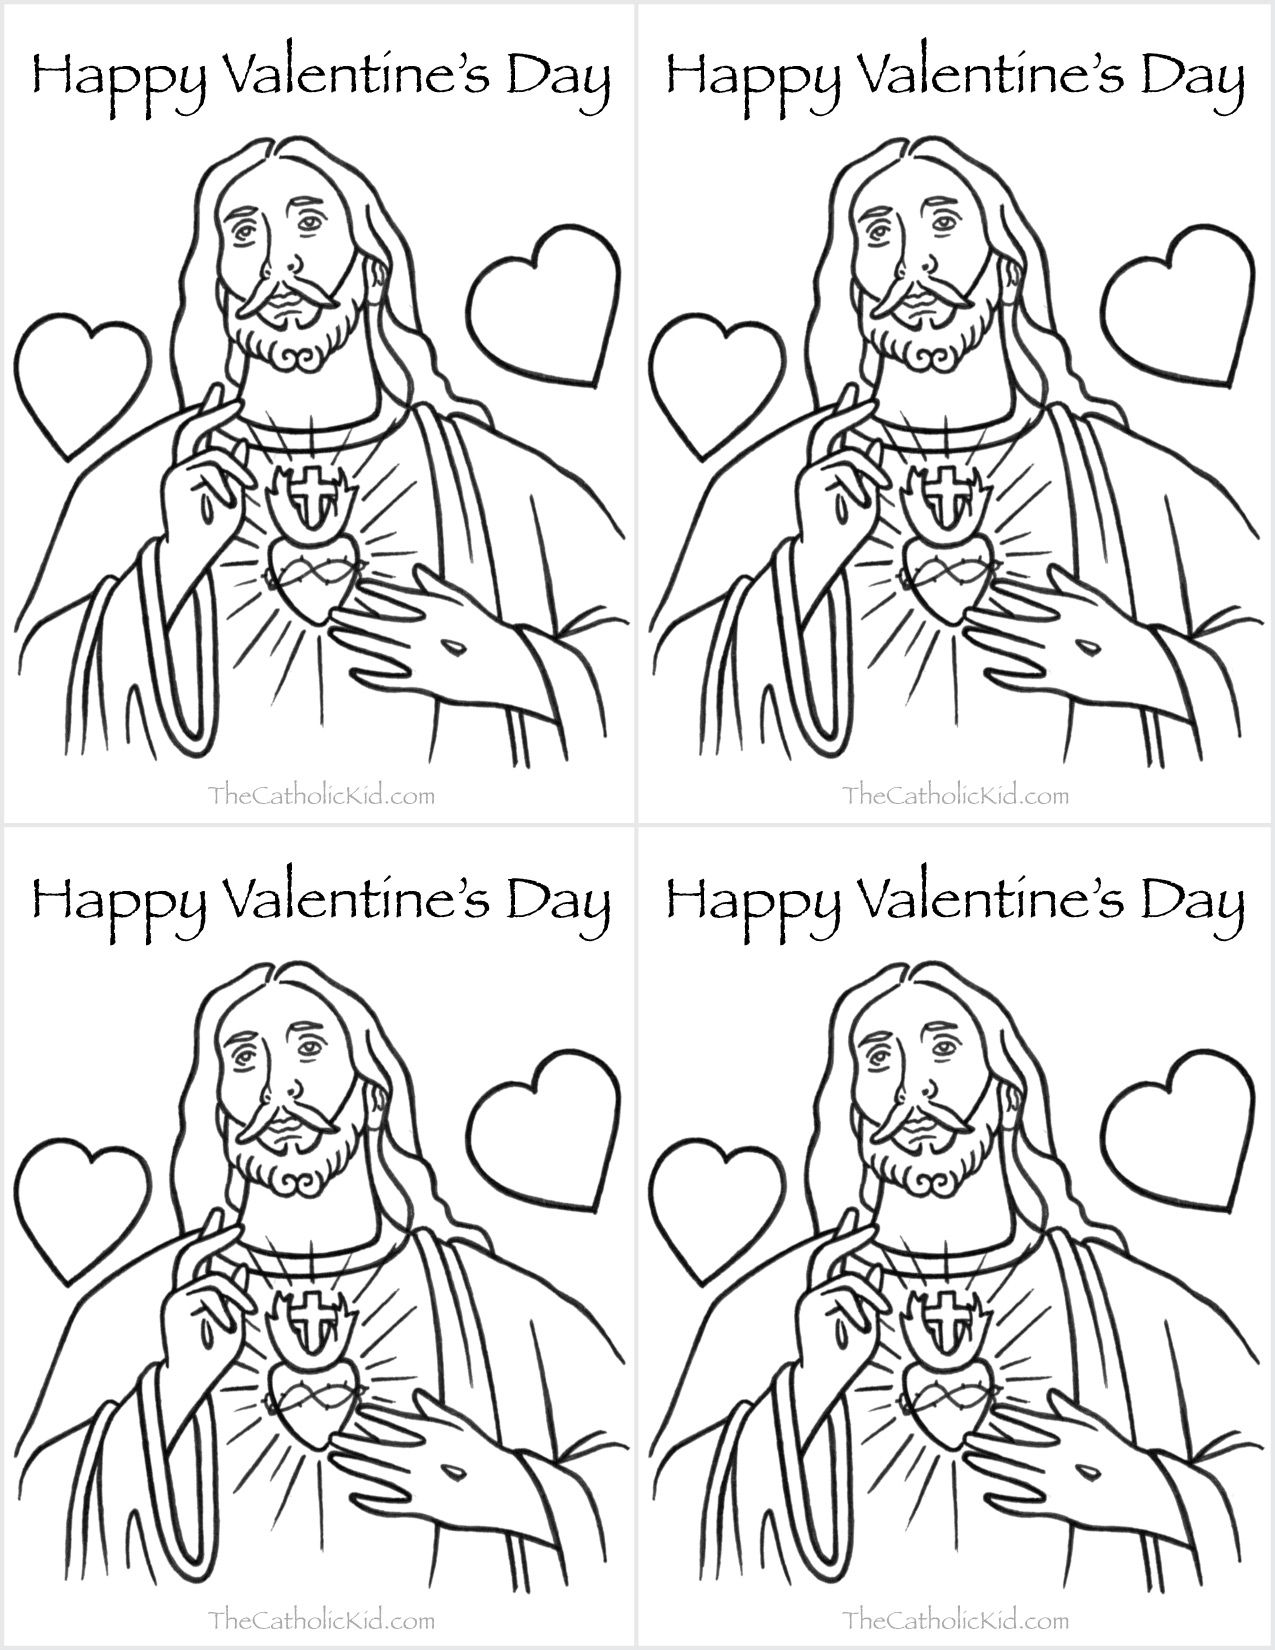 Catholic Coloring Pages Valentines Day - Worksheet & Coloring Pages